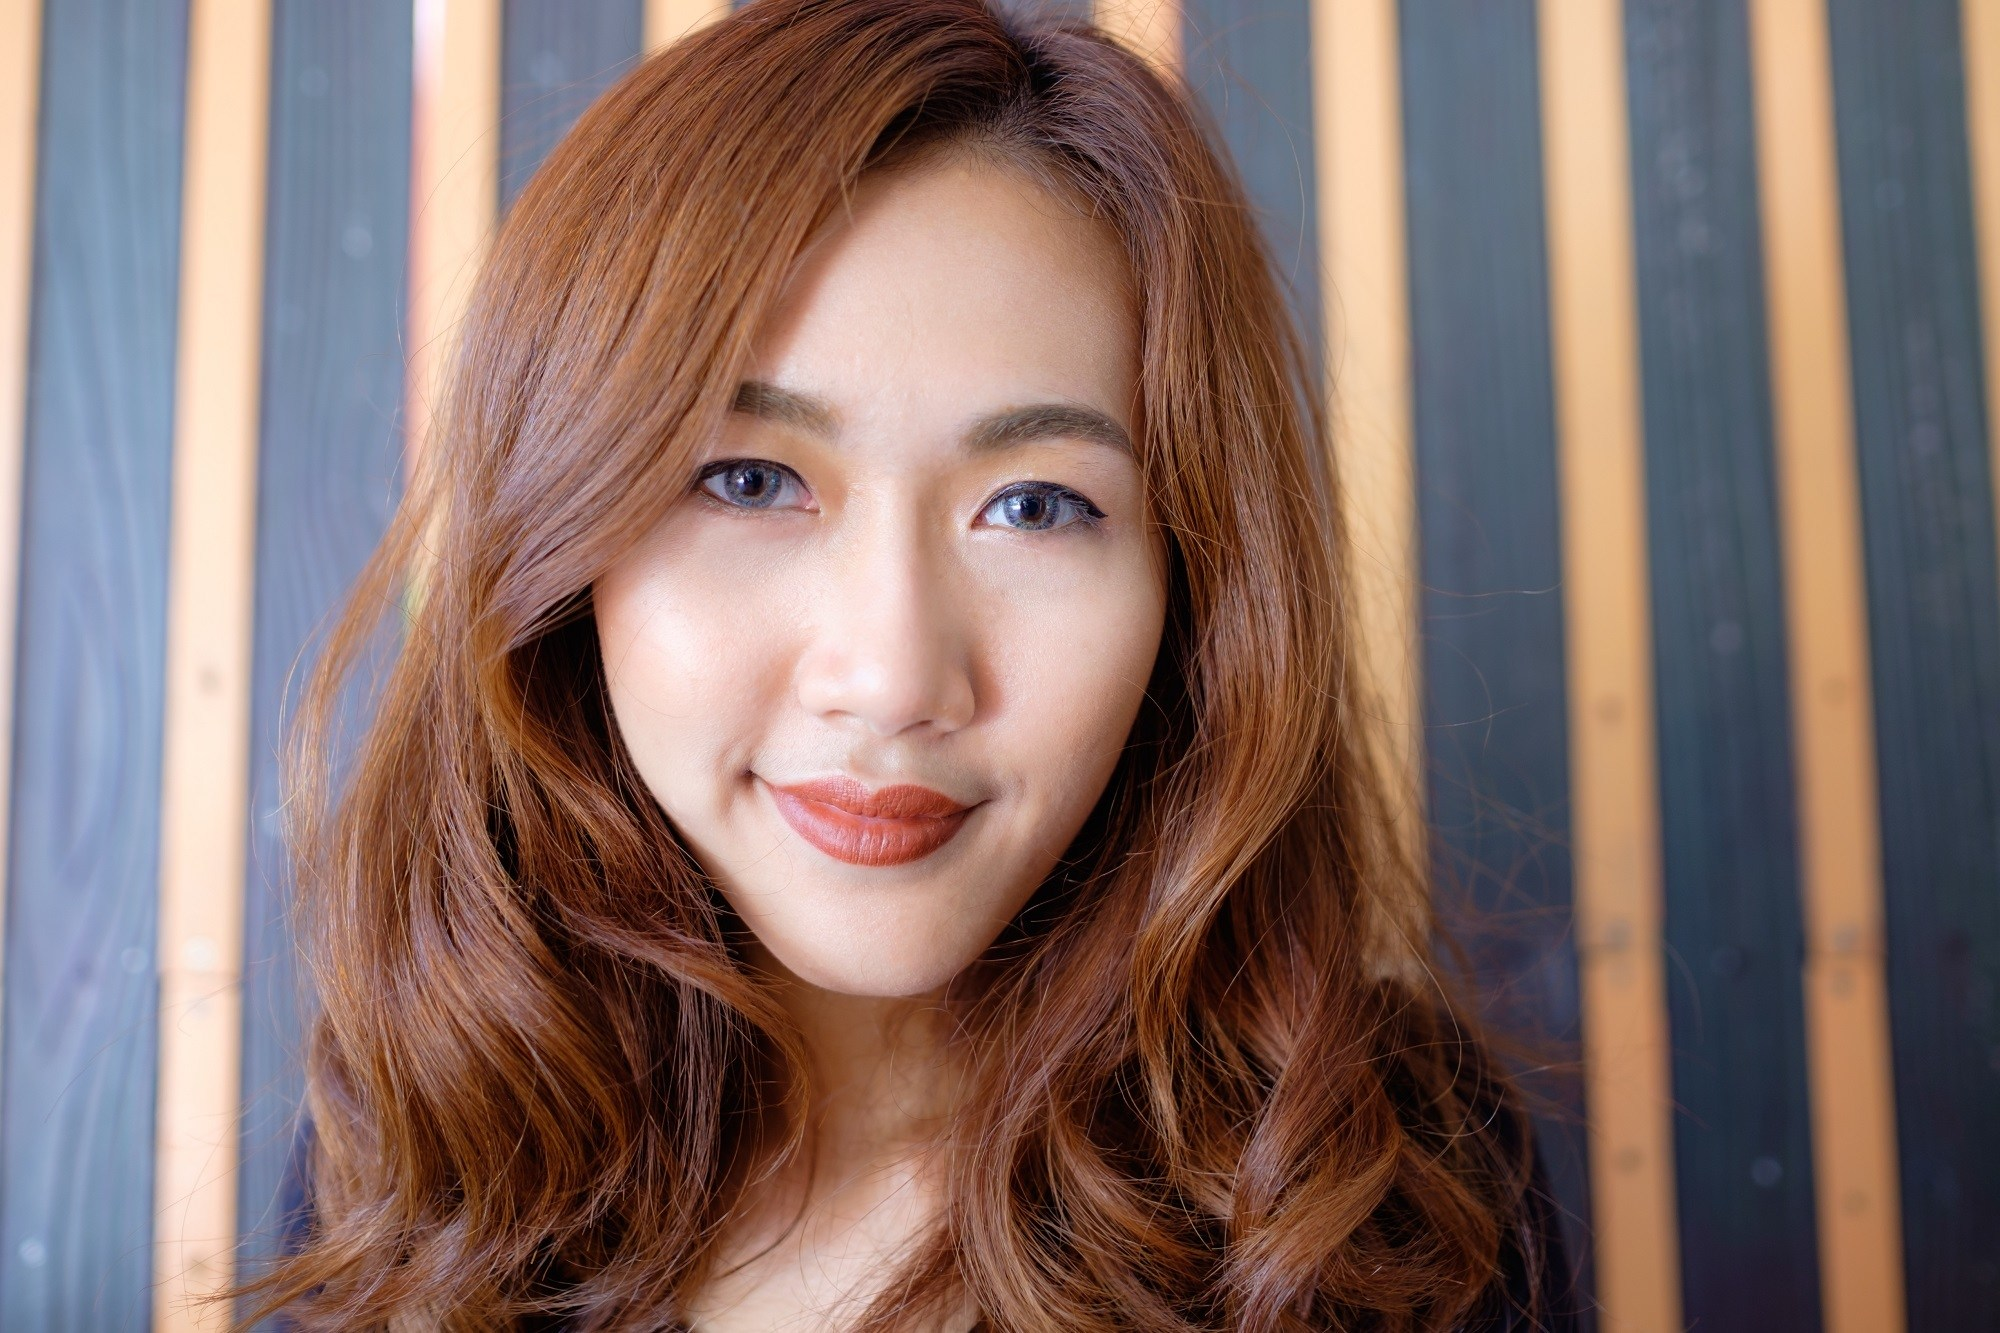 Short straight hairstyles: Asian woman with long brown wavy hair and side swept bangs